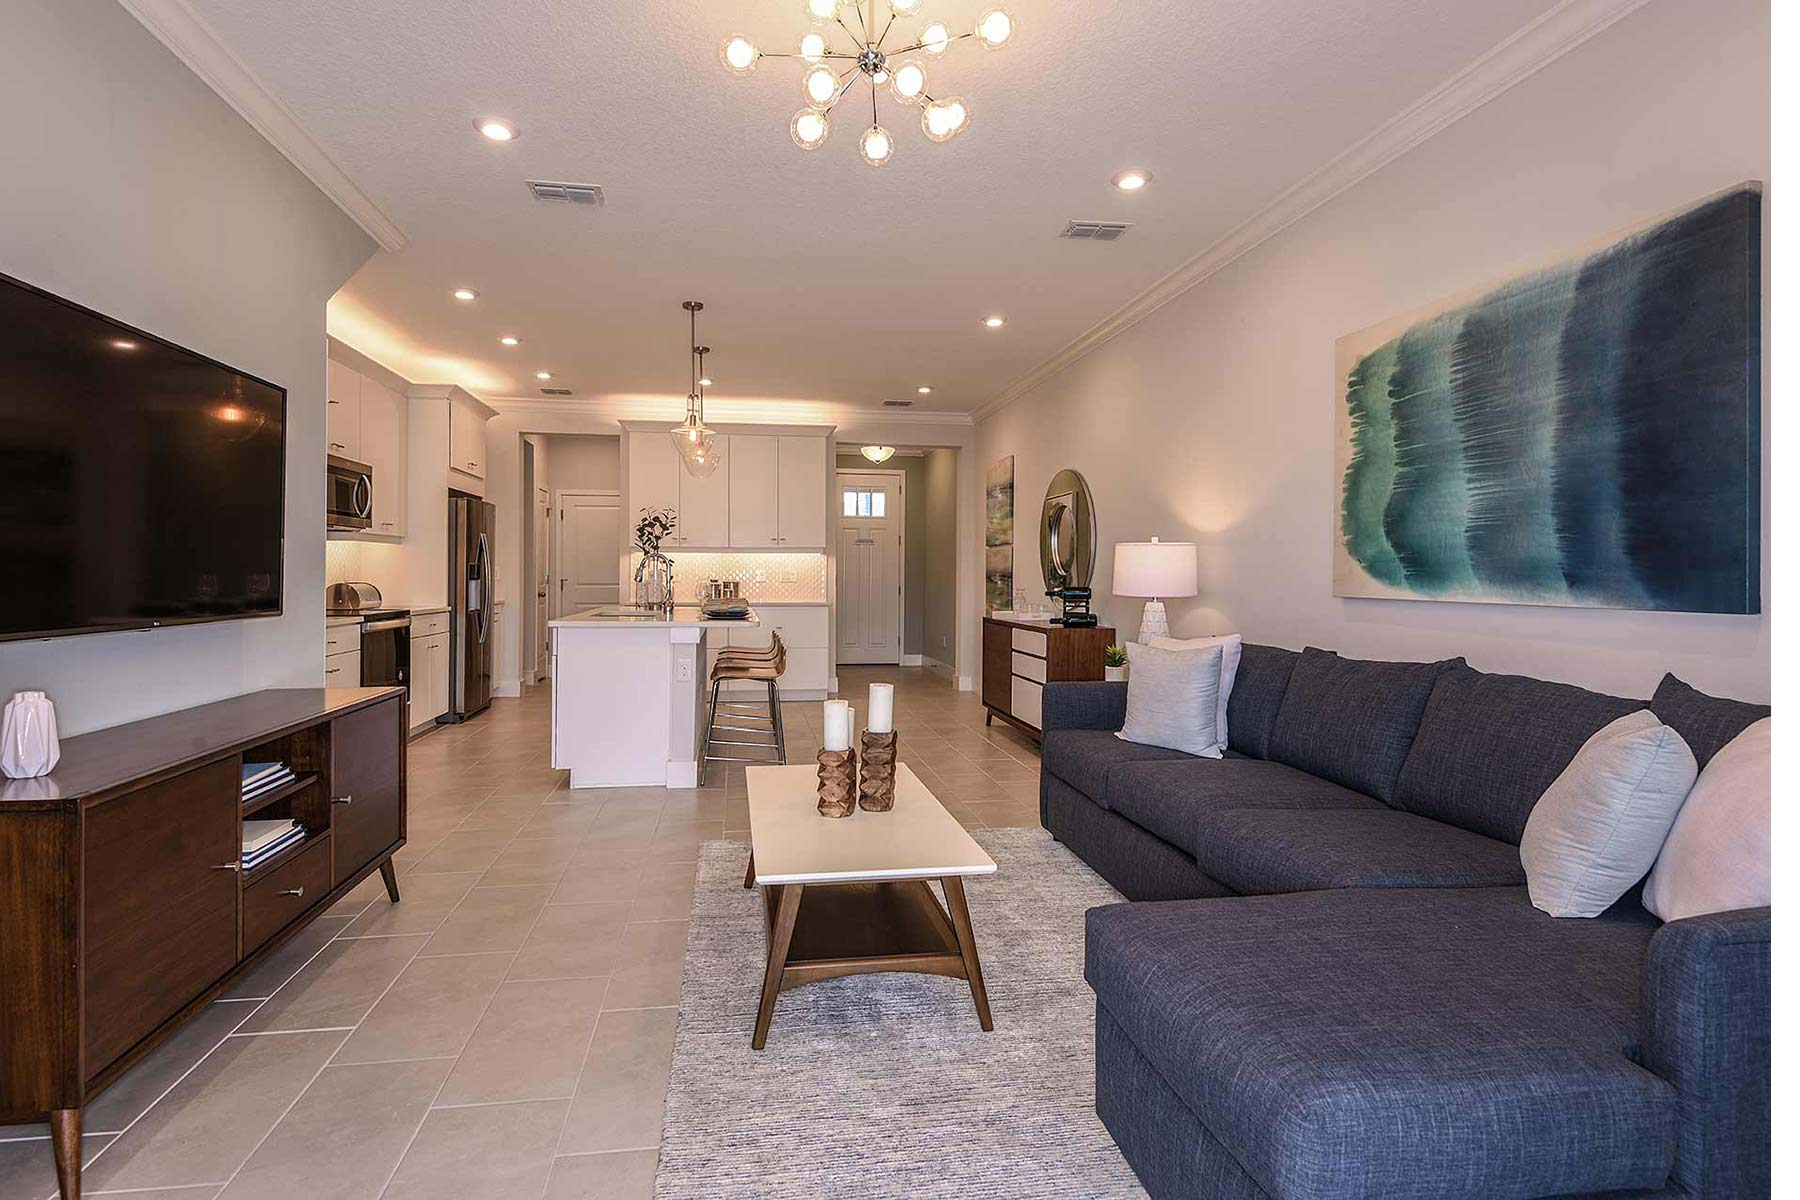 Marianna Plan Greatroom at Avea Pointe in Lutz Florida by Mattamy Homes